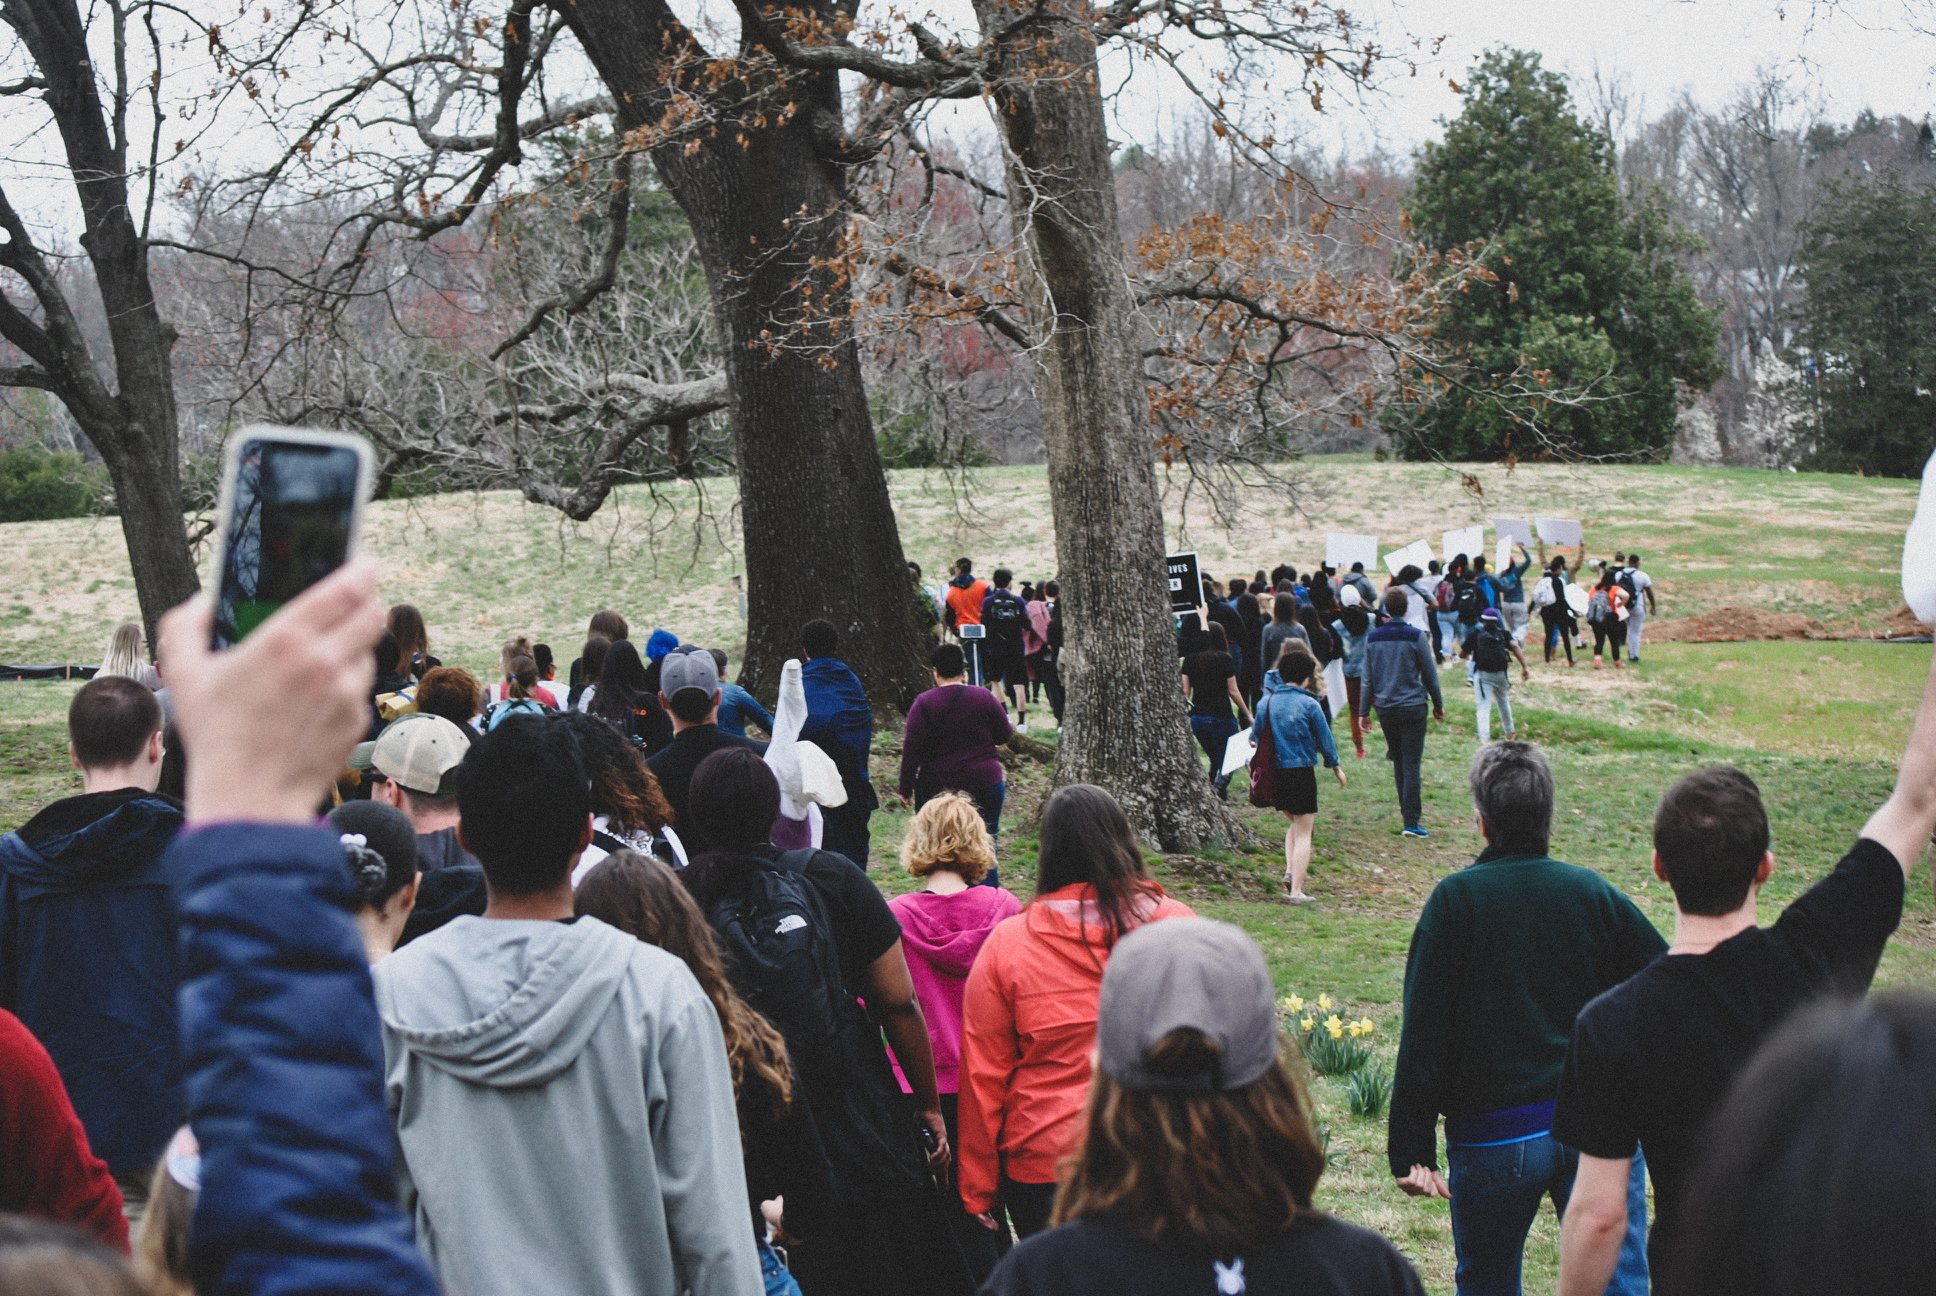 Hundreds of Students and Community members walk through McIntire park to final rallying point, 2019. (Photo by Locs Image Photography)